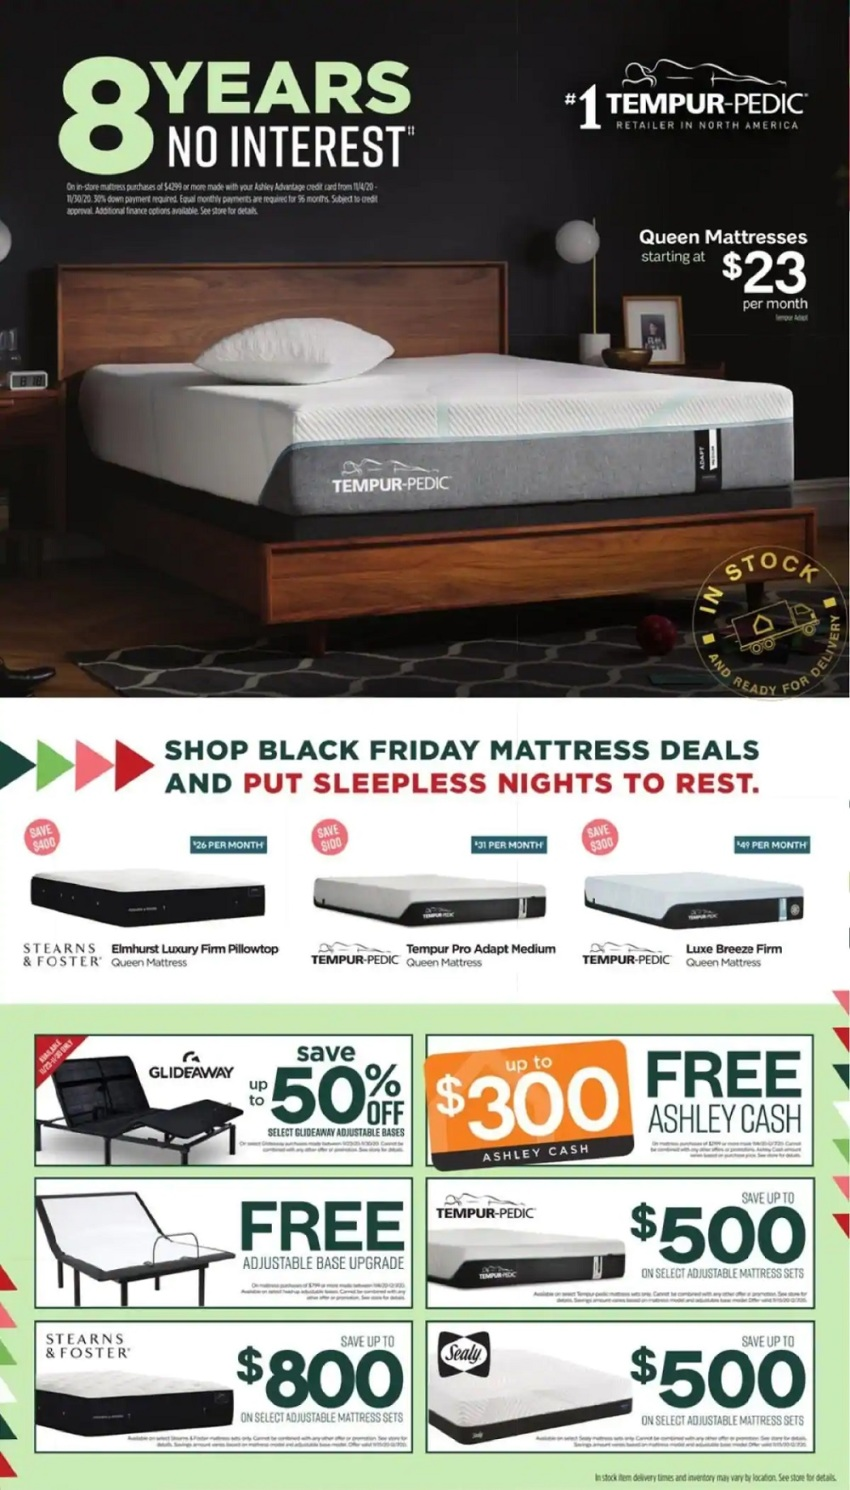 Ashley Furniture Black Friday 2020 Ad